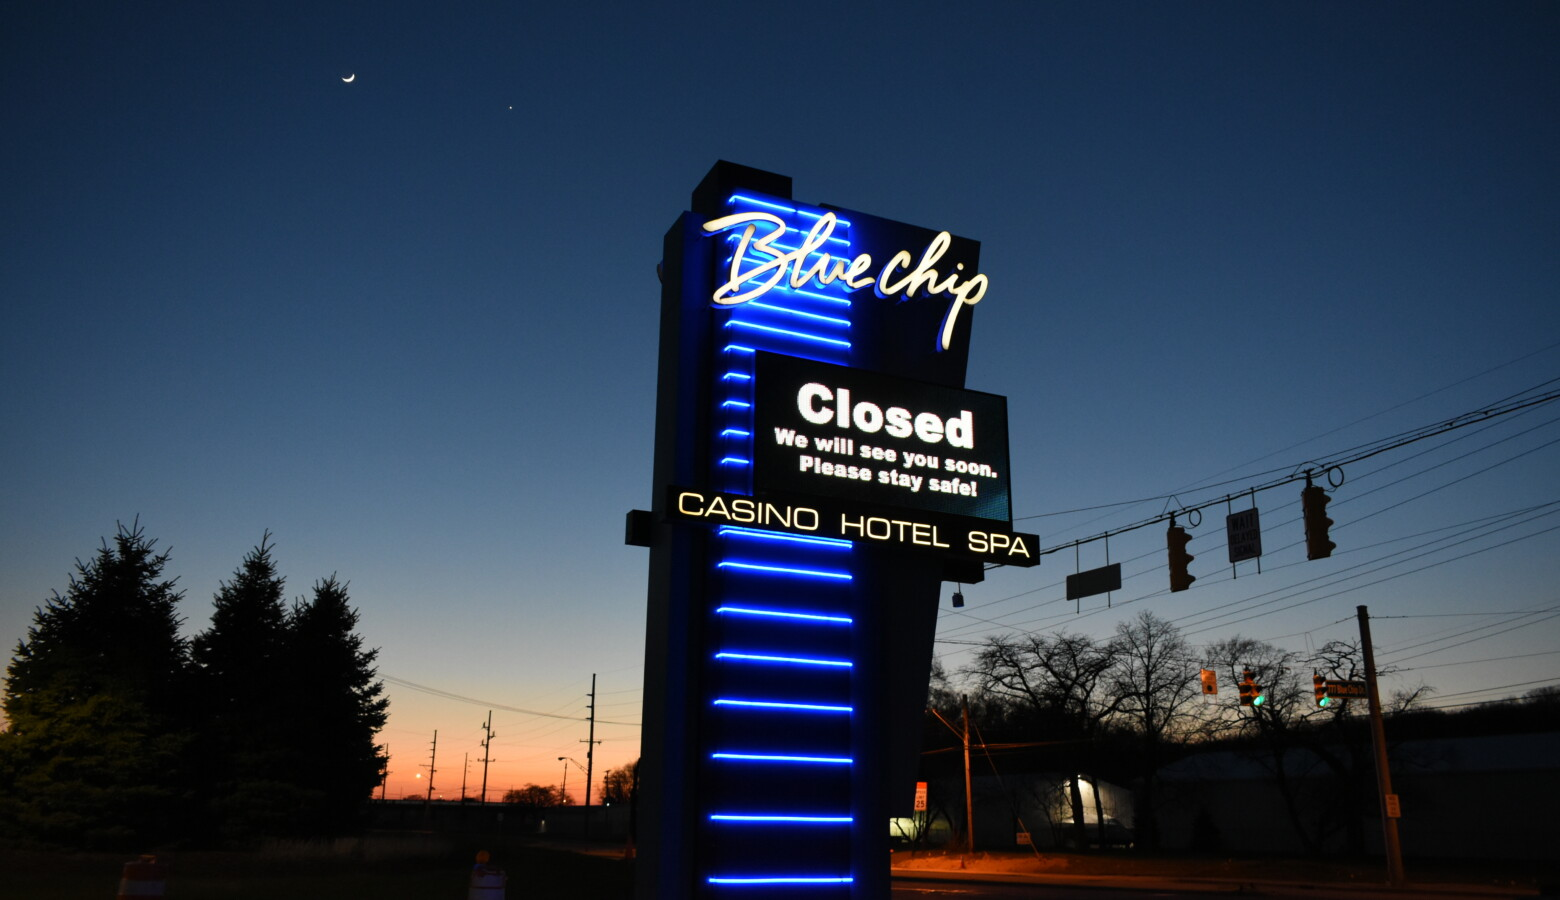 Casinos were required to submit health and safety plans before the state would allow them to reopen. (Justin Hicks/IPB News)